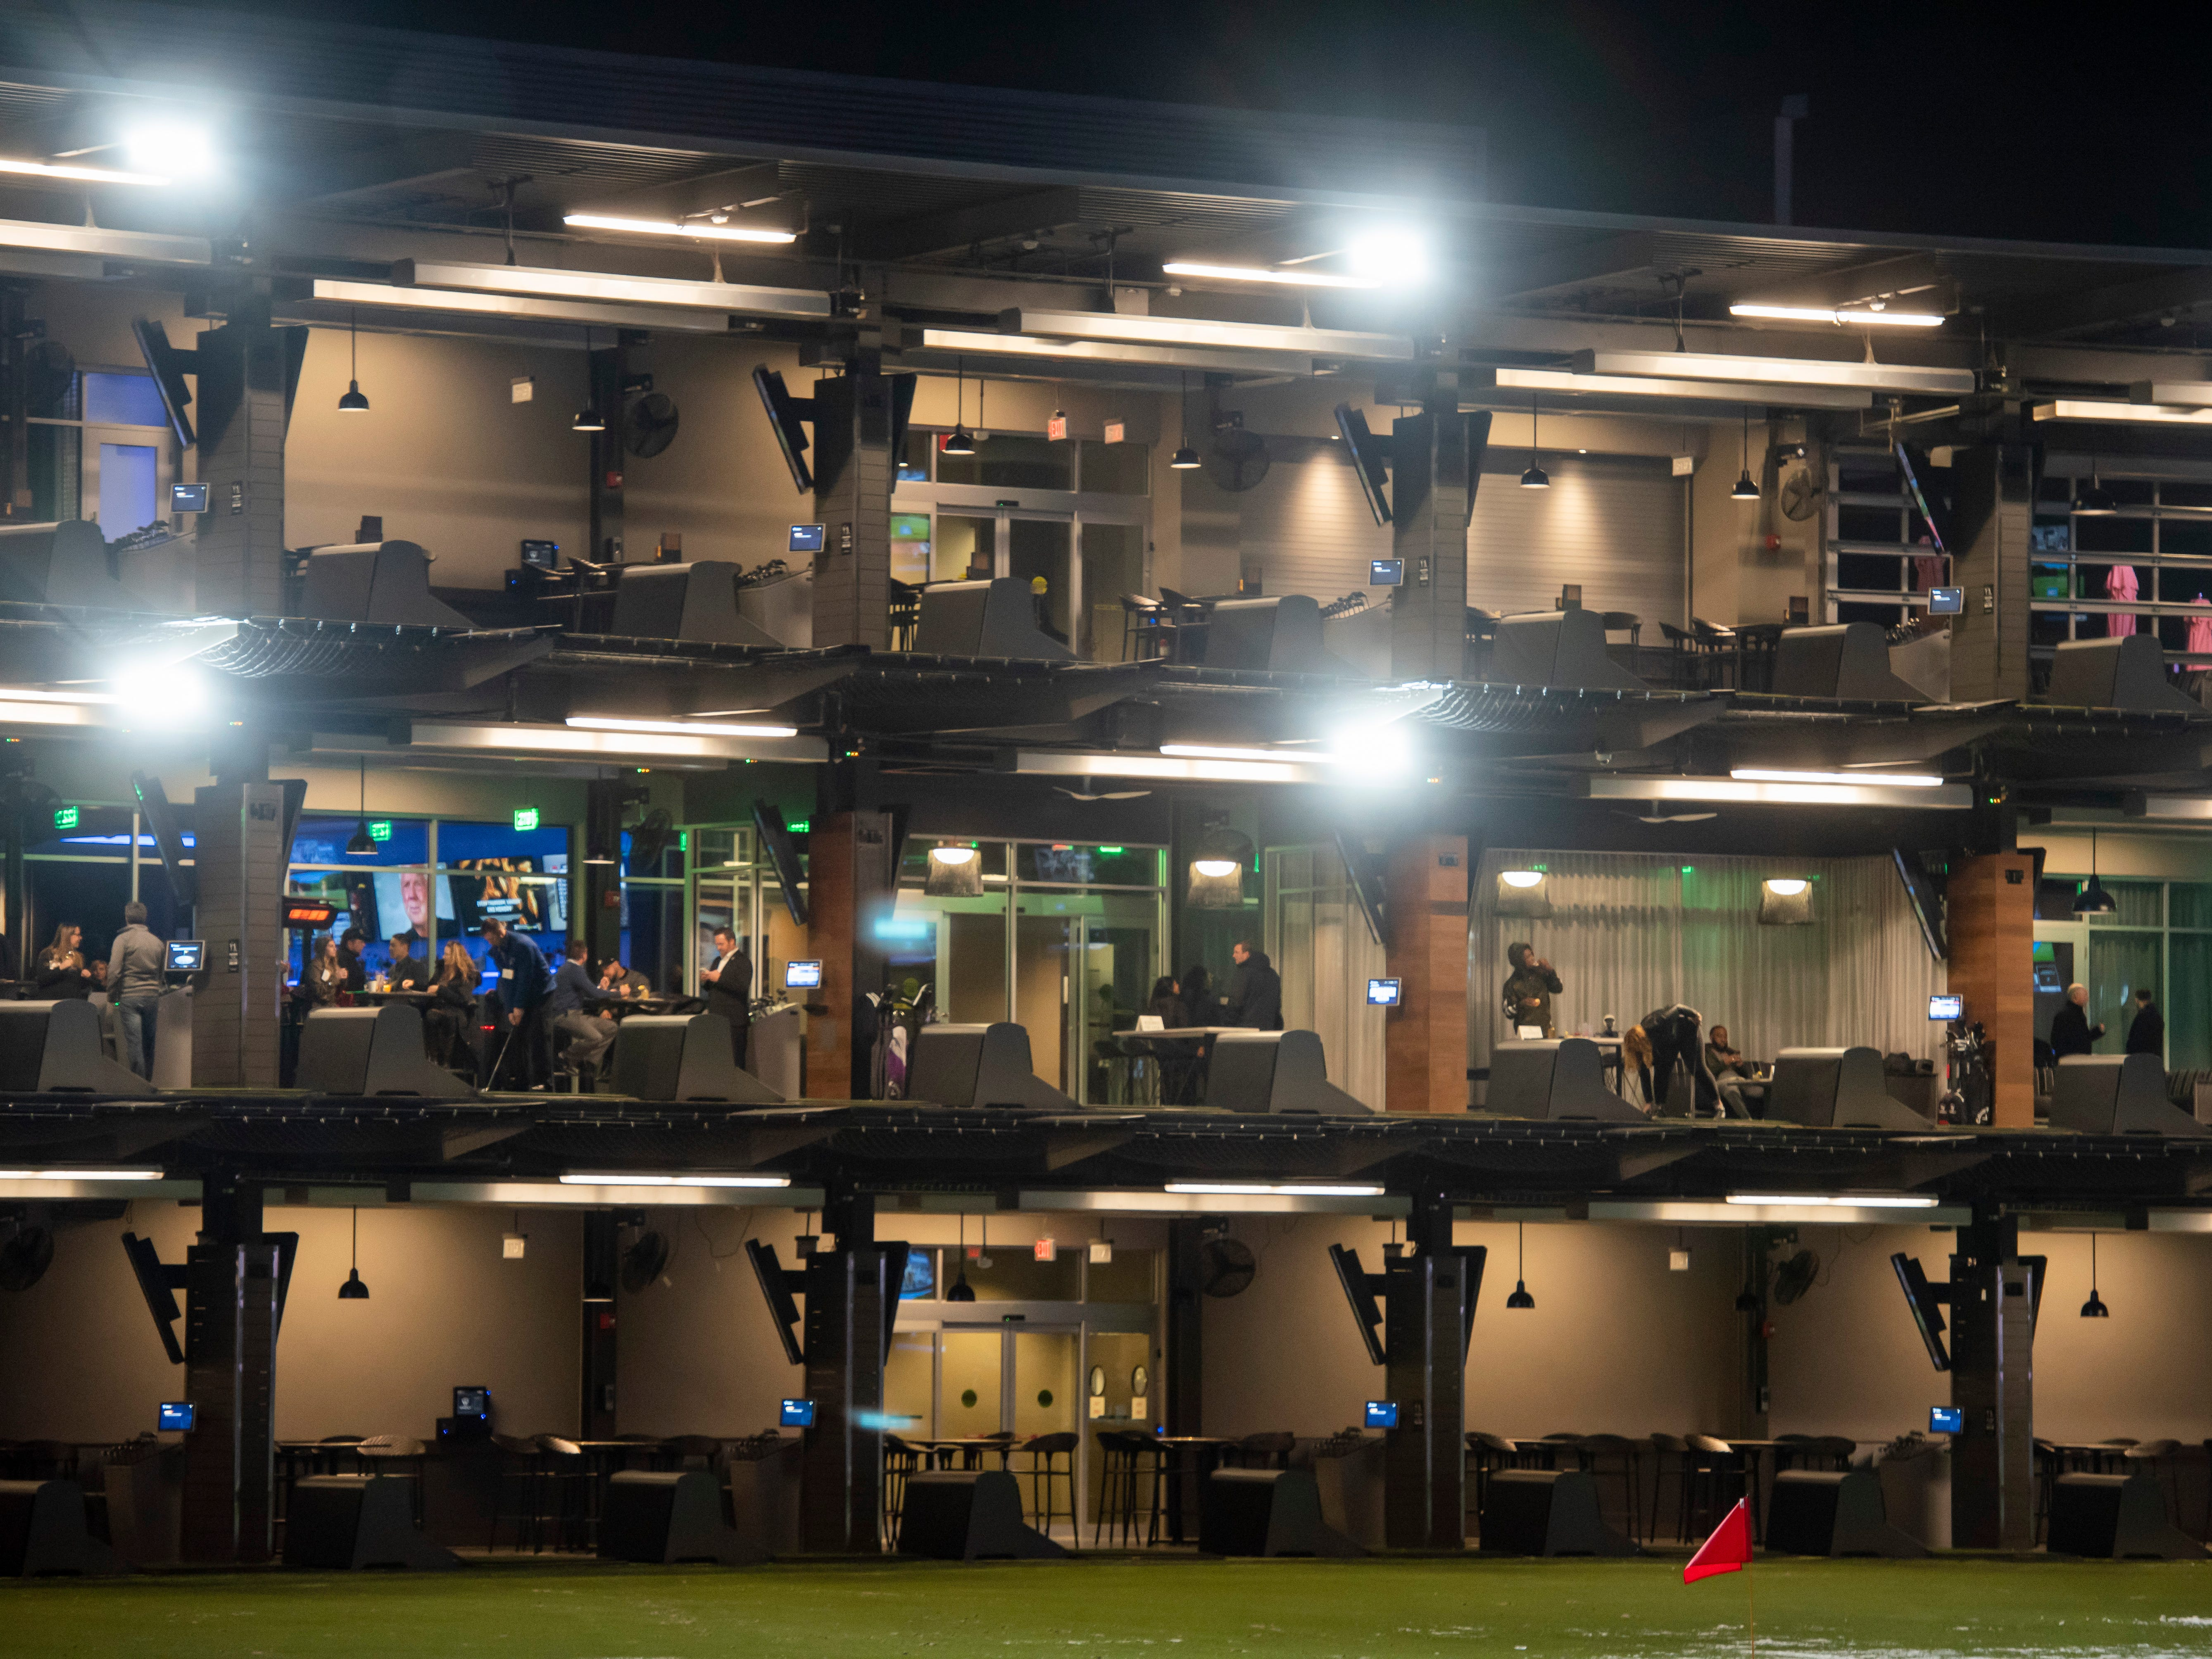 Guests try out one of the heated driving ranges during a preview event at Topgolf, in Auburn Hills.